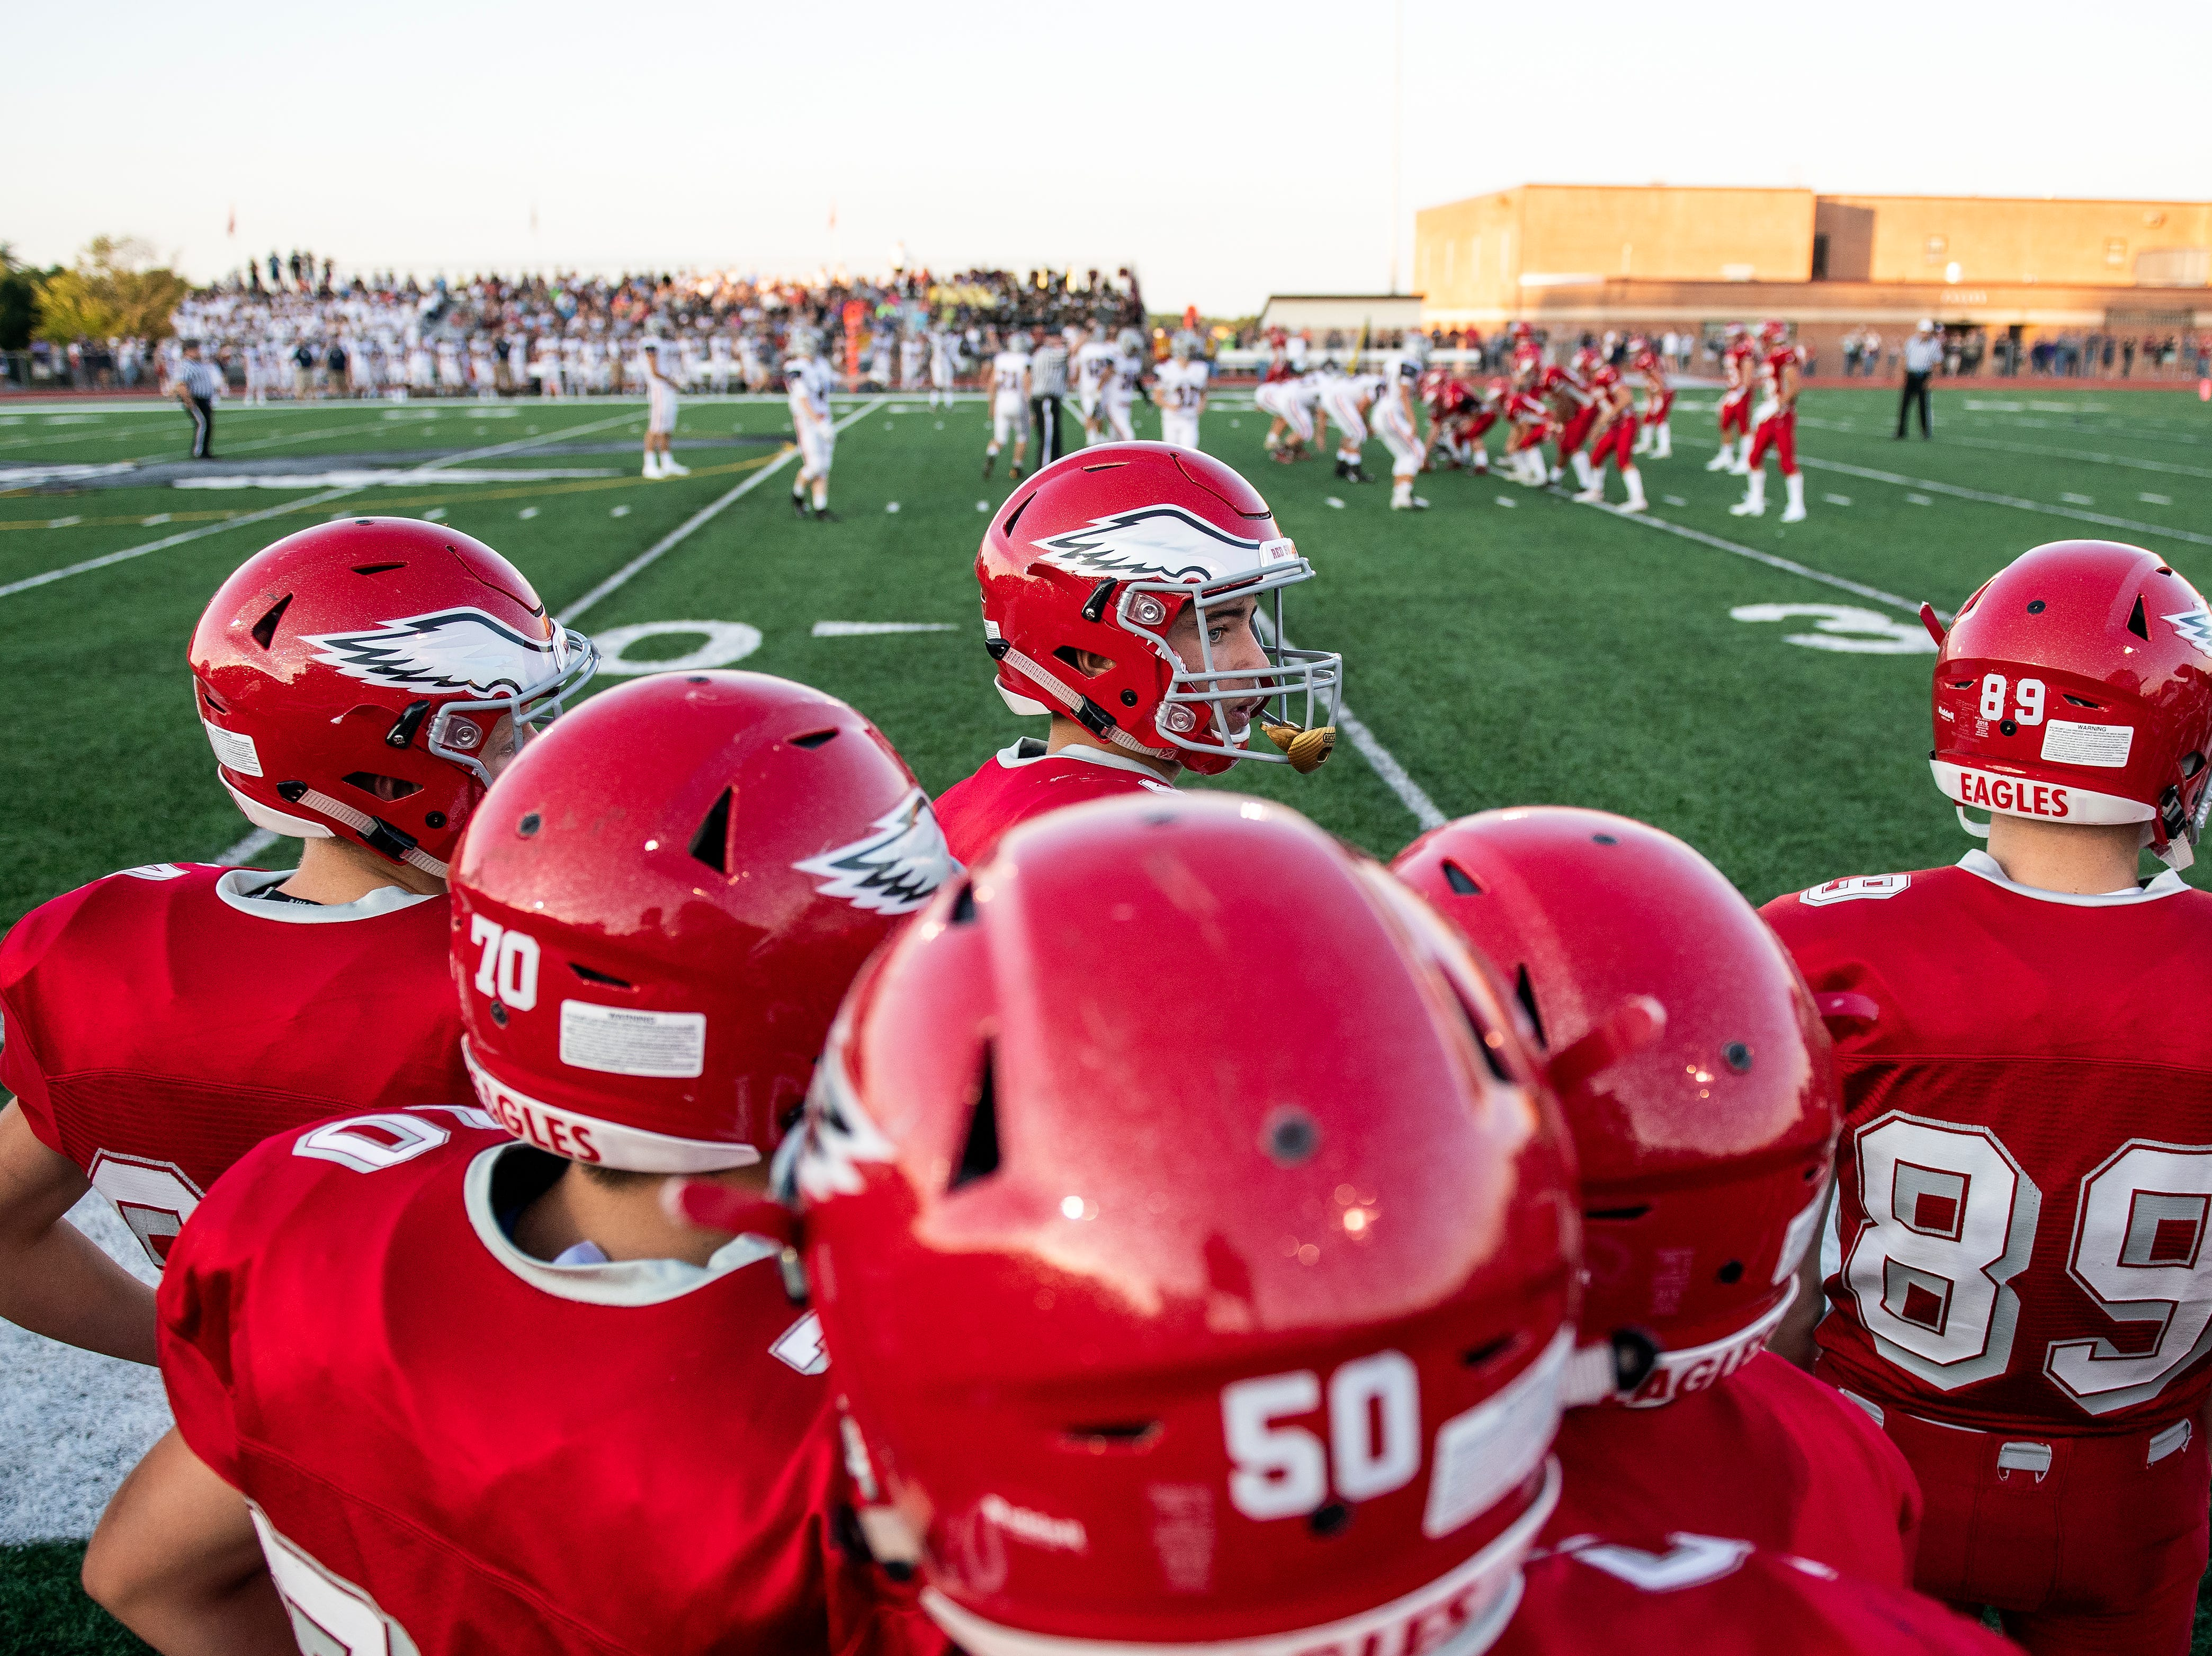 A Bermudian Springs' players looks toward the coach during the Eagles first home game of the season against the New Oxford Colonials, Friday, Aug. 24, 2018. The Eagles skimmed past the Colonials, 28-22.